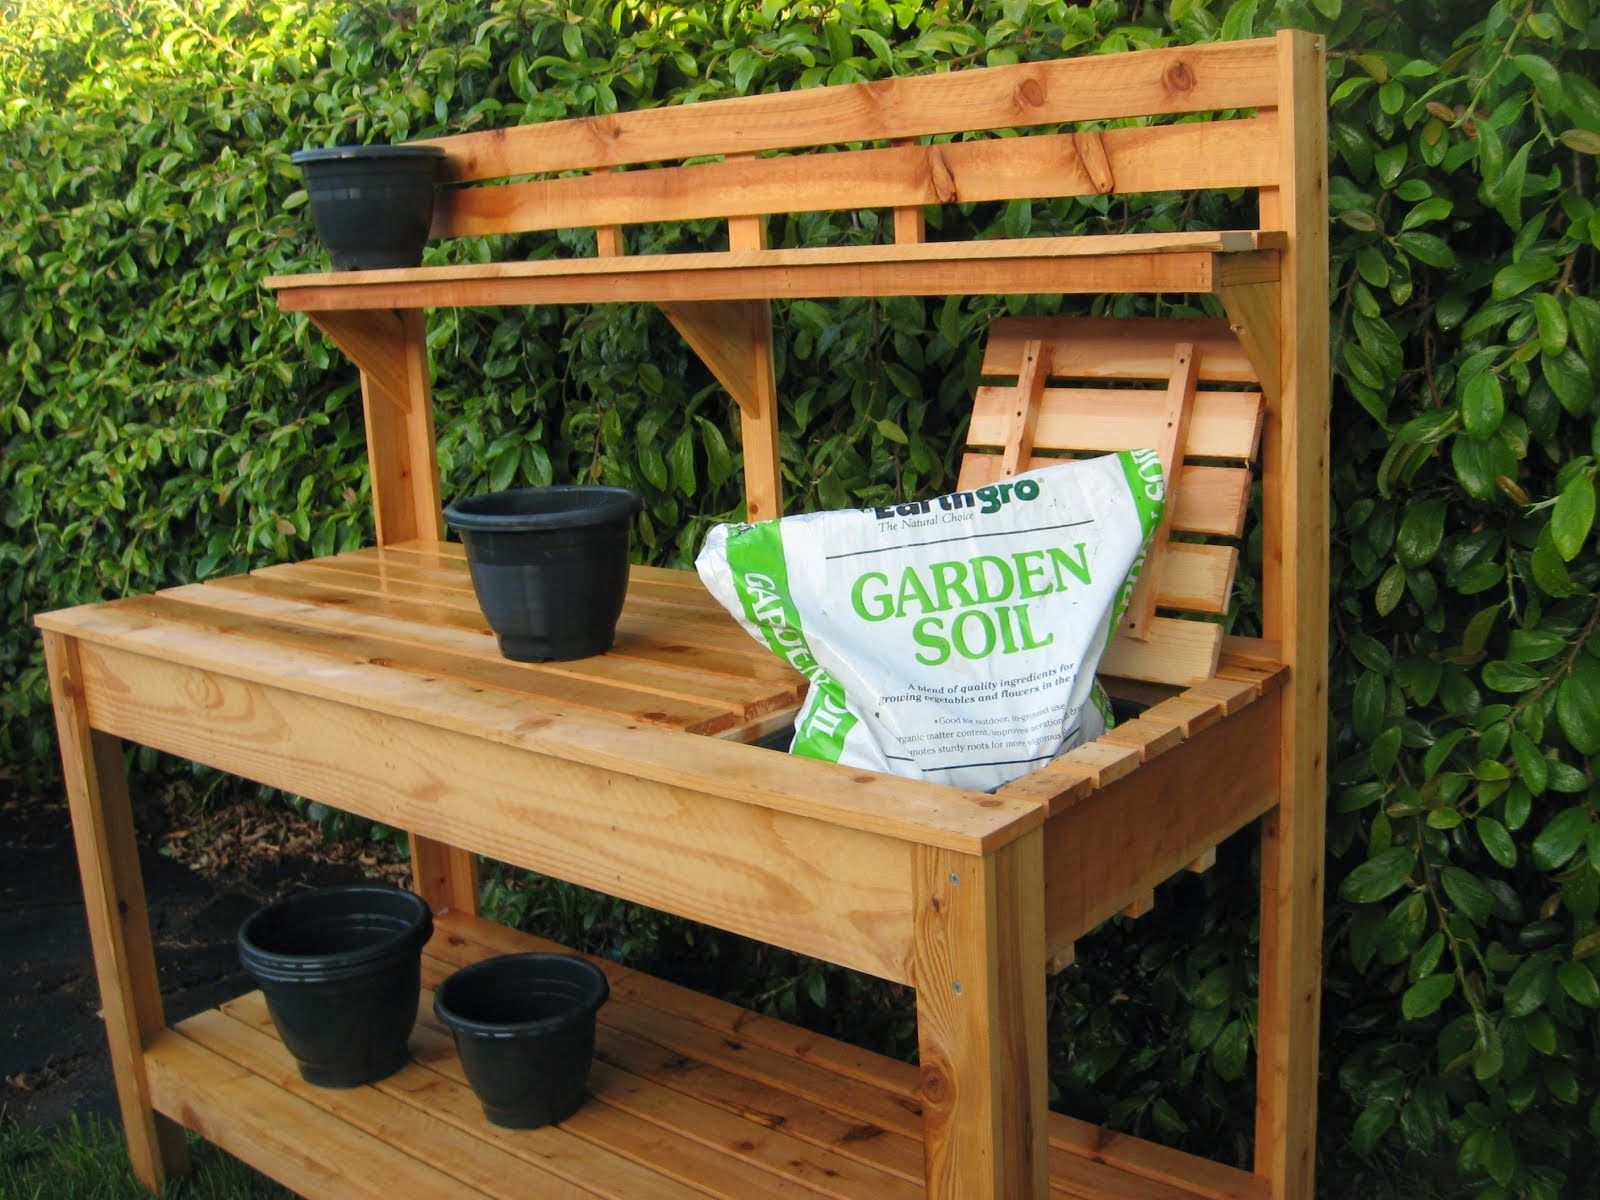 Outdoor potting bench lowes designs bench pinterest gardens news sites and lowes Potting bench ideas